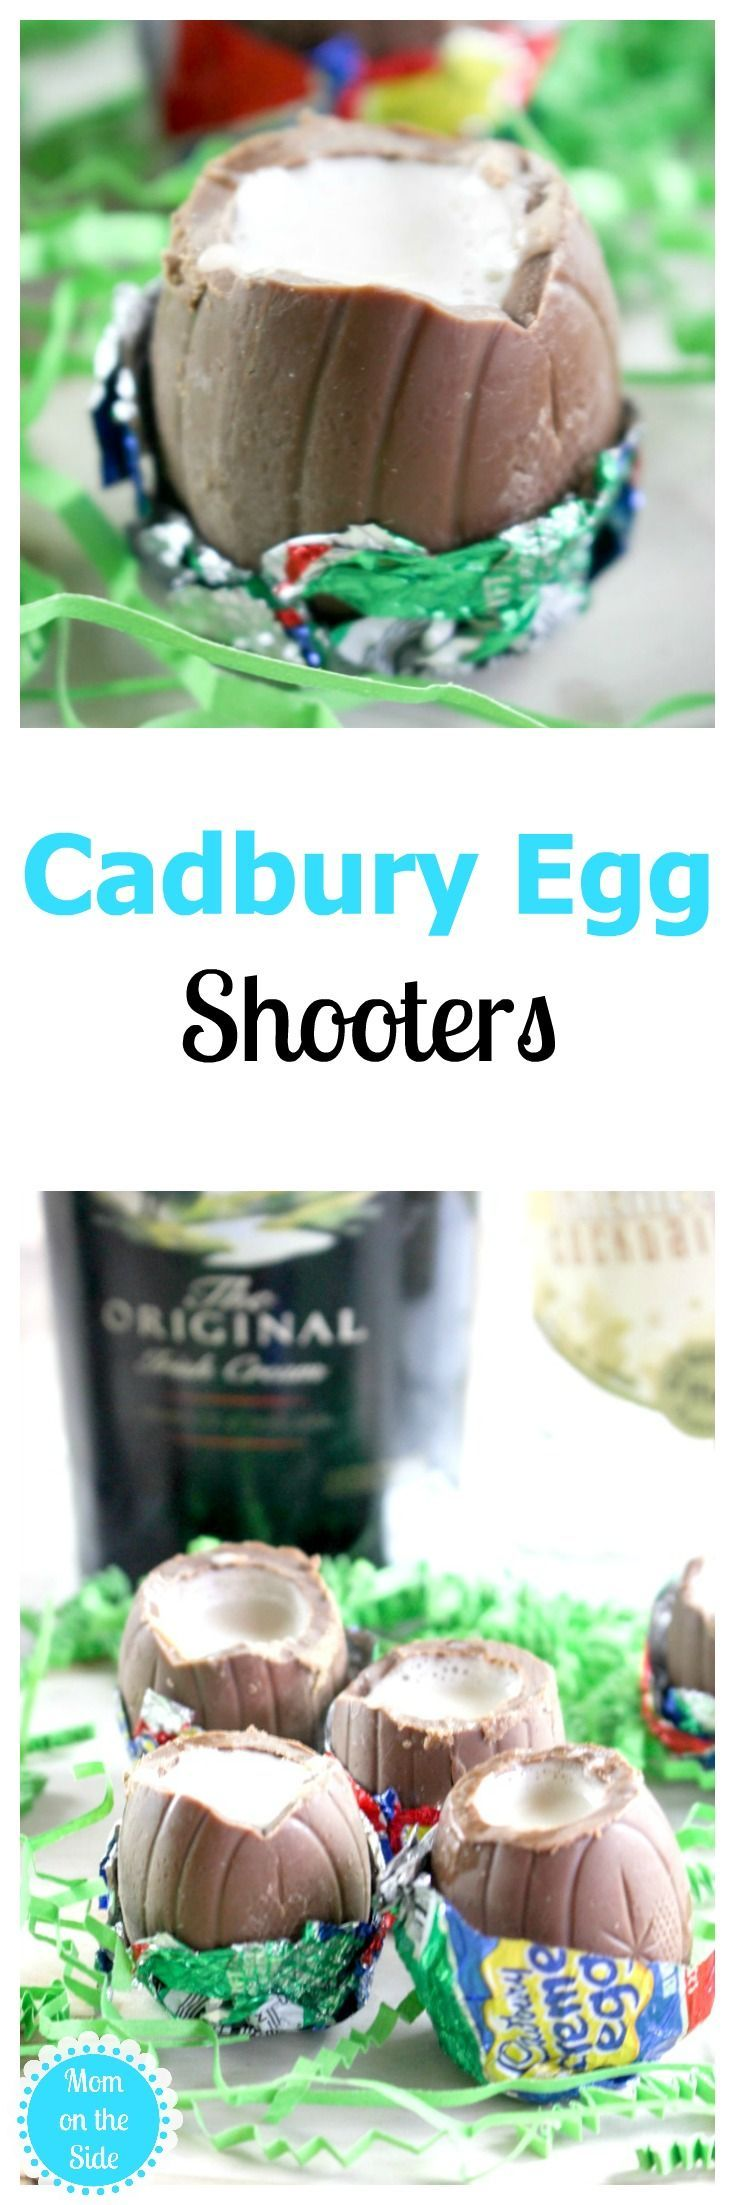 Using Cadbury Eggs to make shots for Easter is super fun! If you will be serving Easter cocktails at your party, give these Cadbury Egg Shooters a try. via @momontheside